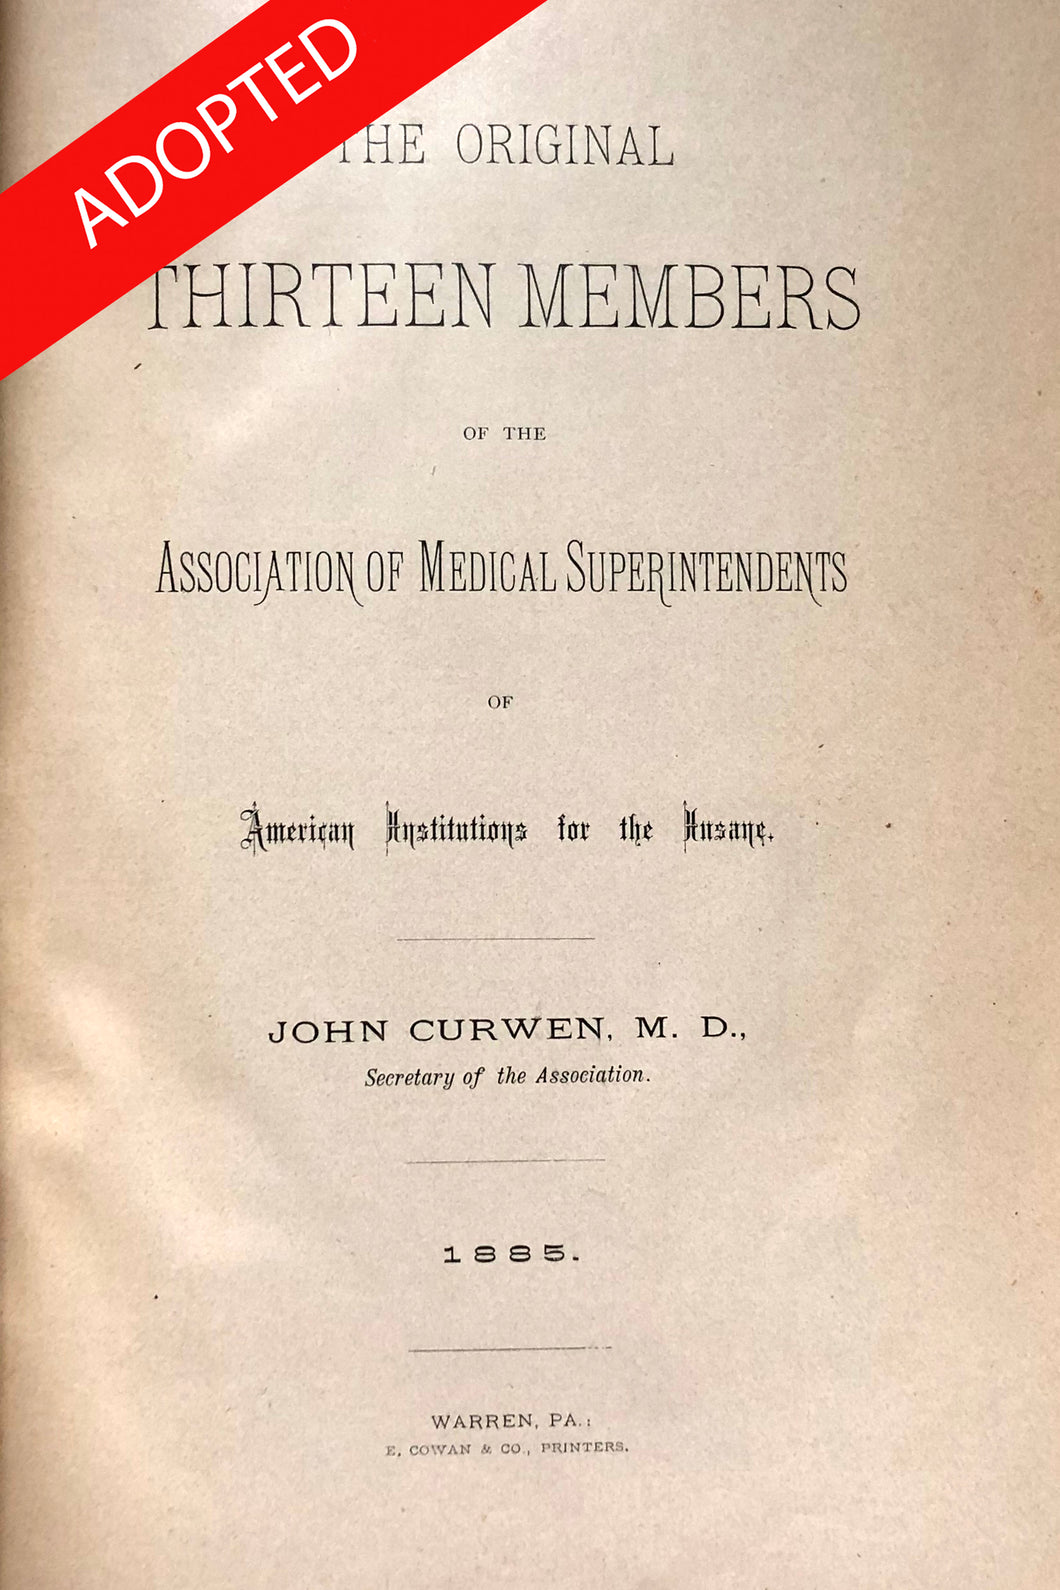 The original thirteen members of the Association of Medical Superintendents of American institutions for the insane